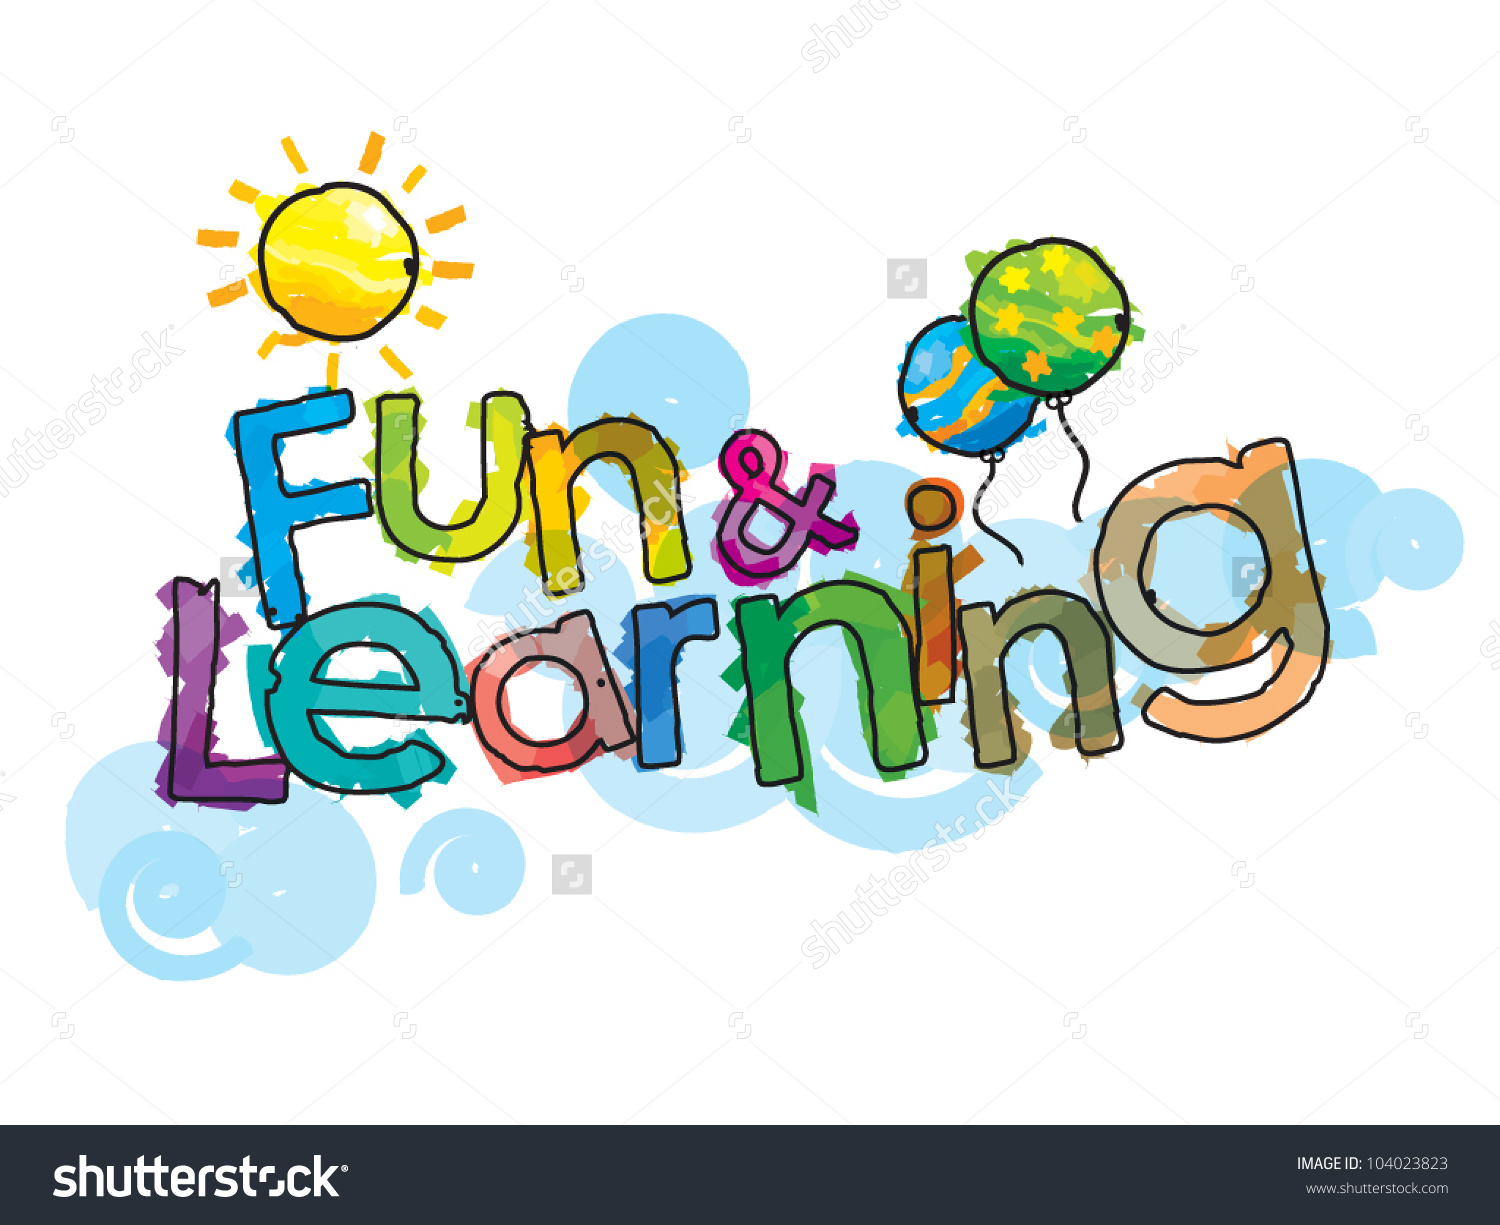 English is fun clipart 7 » Clipart Station.